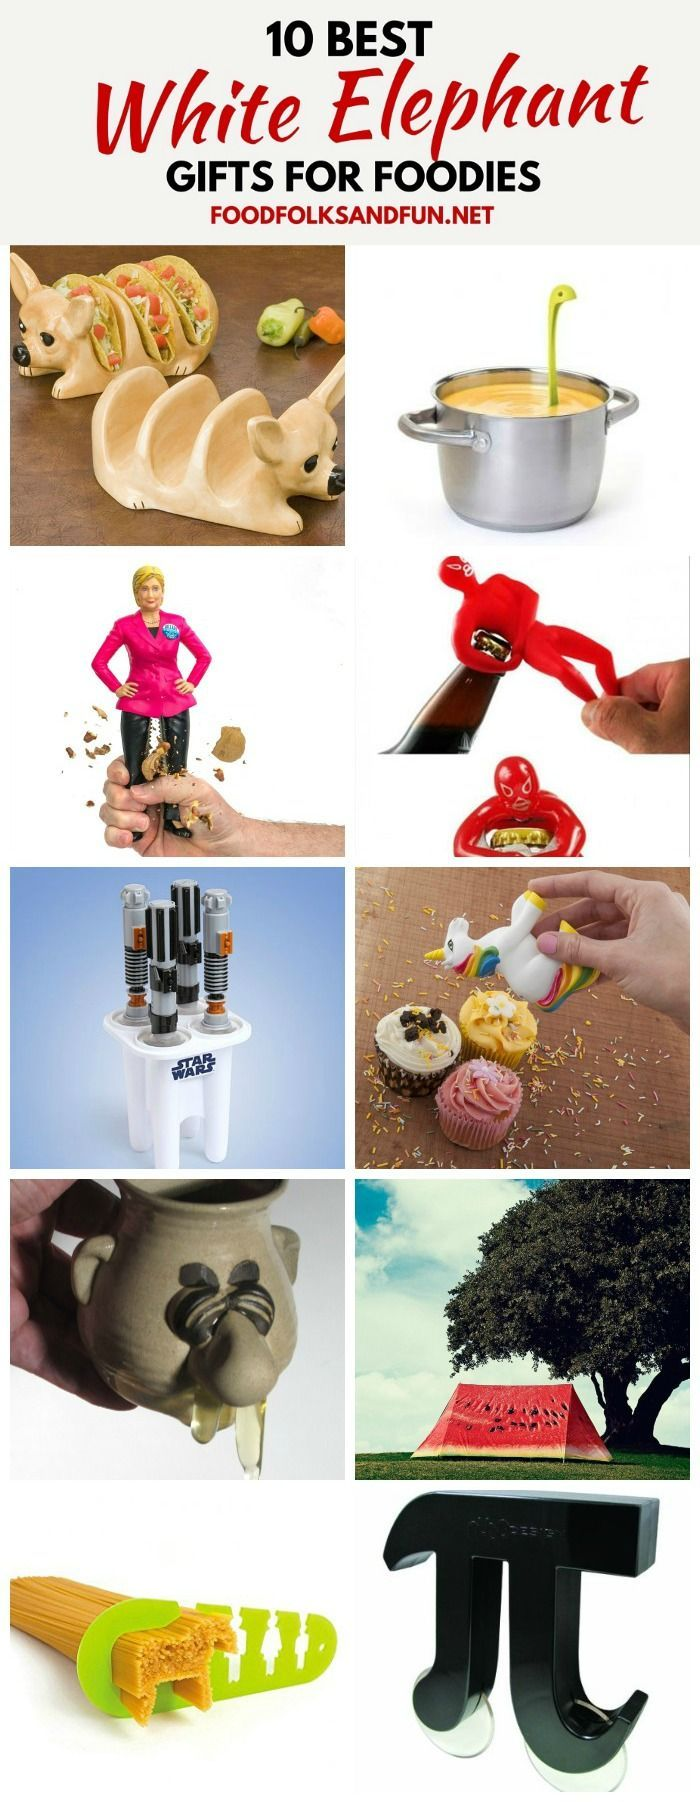 10 Best White Elephant Gift Ideas for Foodies -   19 white elephant gift for work ideas